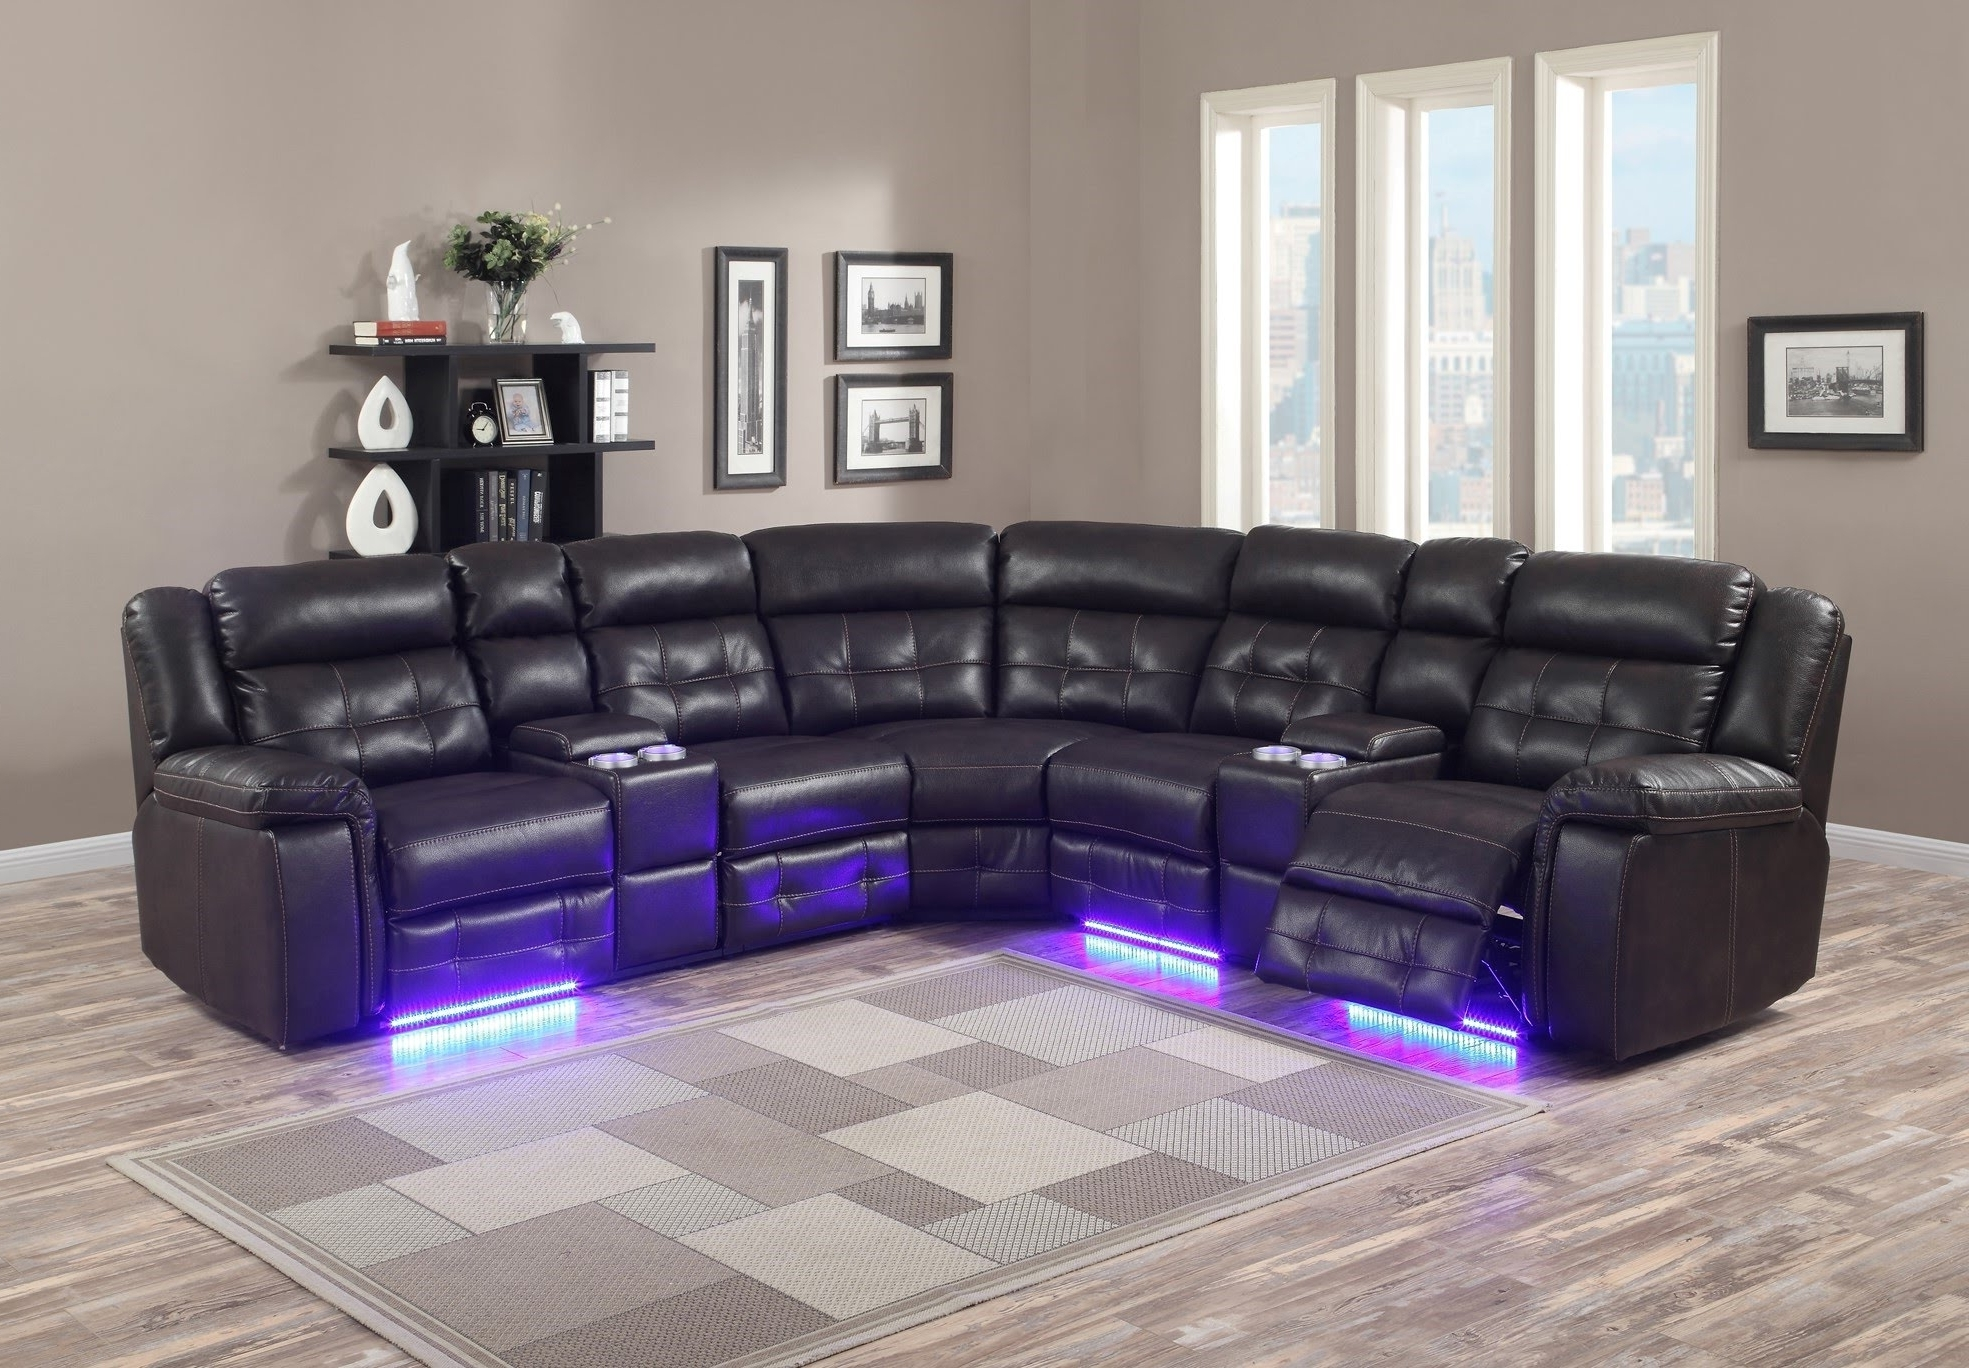 Most Popular Sectional Sofas At Brampton With Regard To Couch (View 16 of 20)